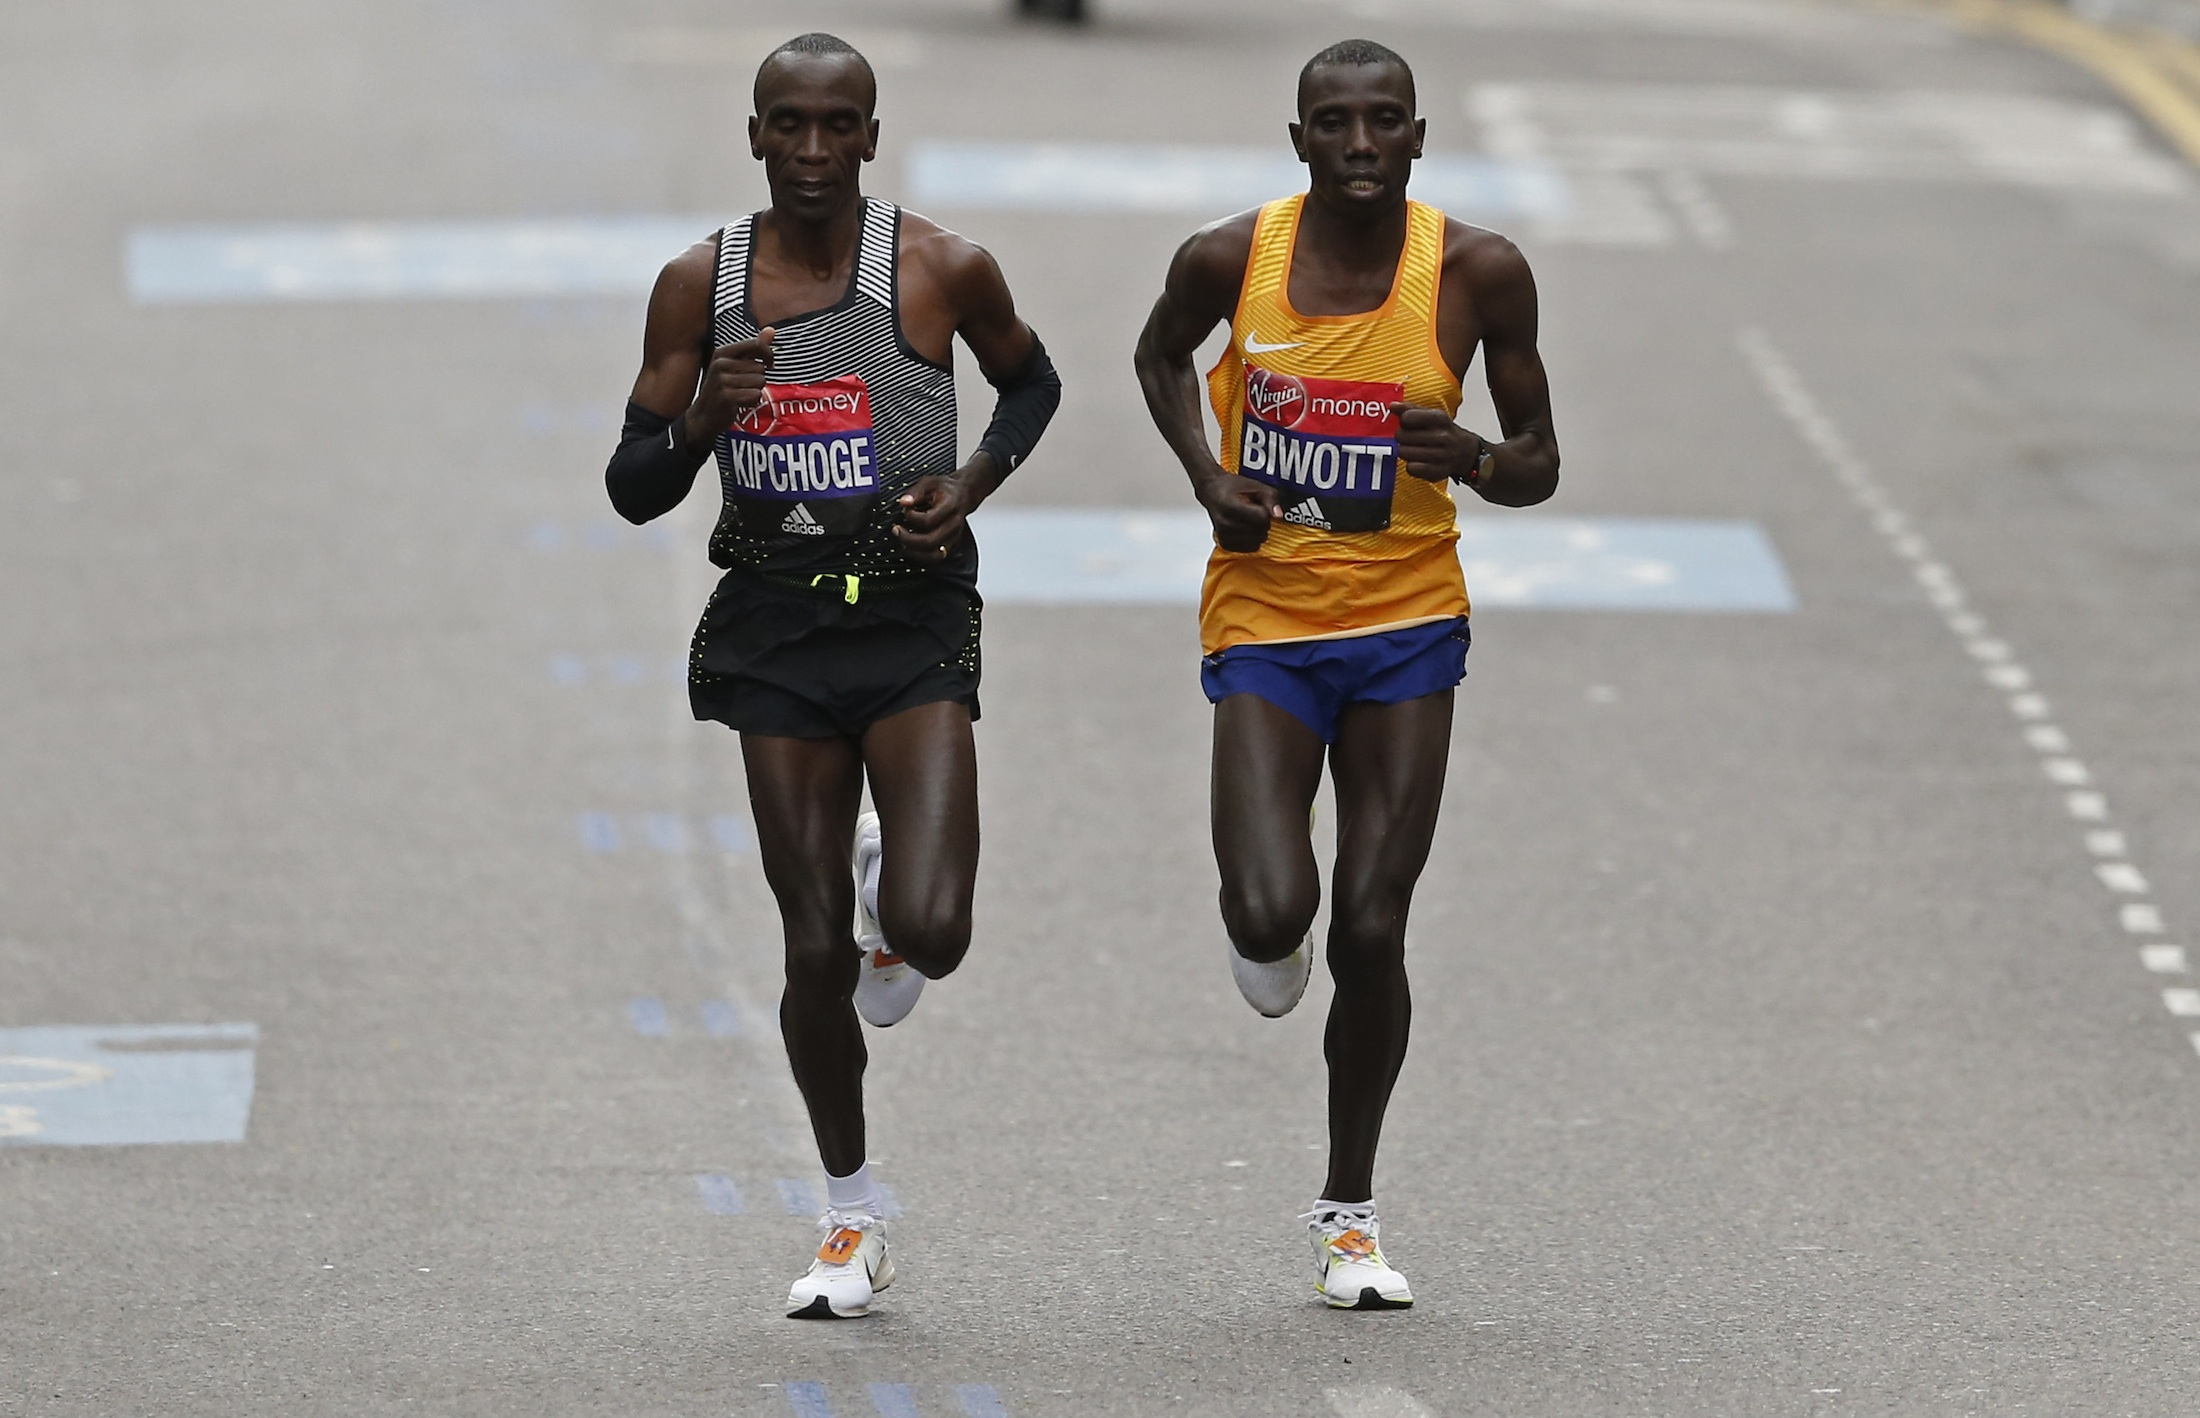 The London Marathon's first and second place winners, Eliud Kipchoge and Stanley Biwott, both from Kenya.